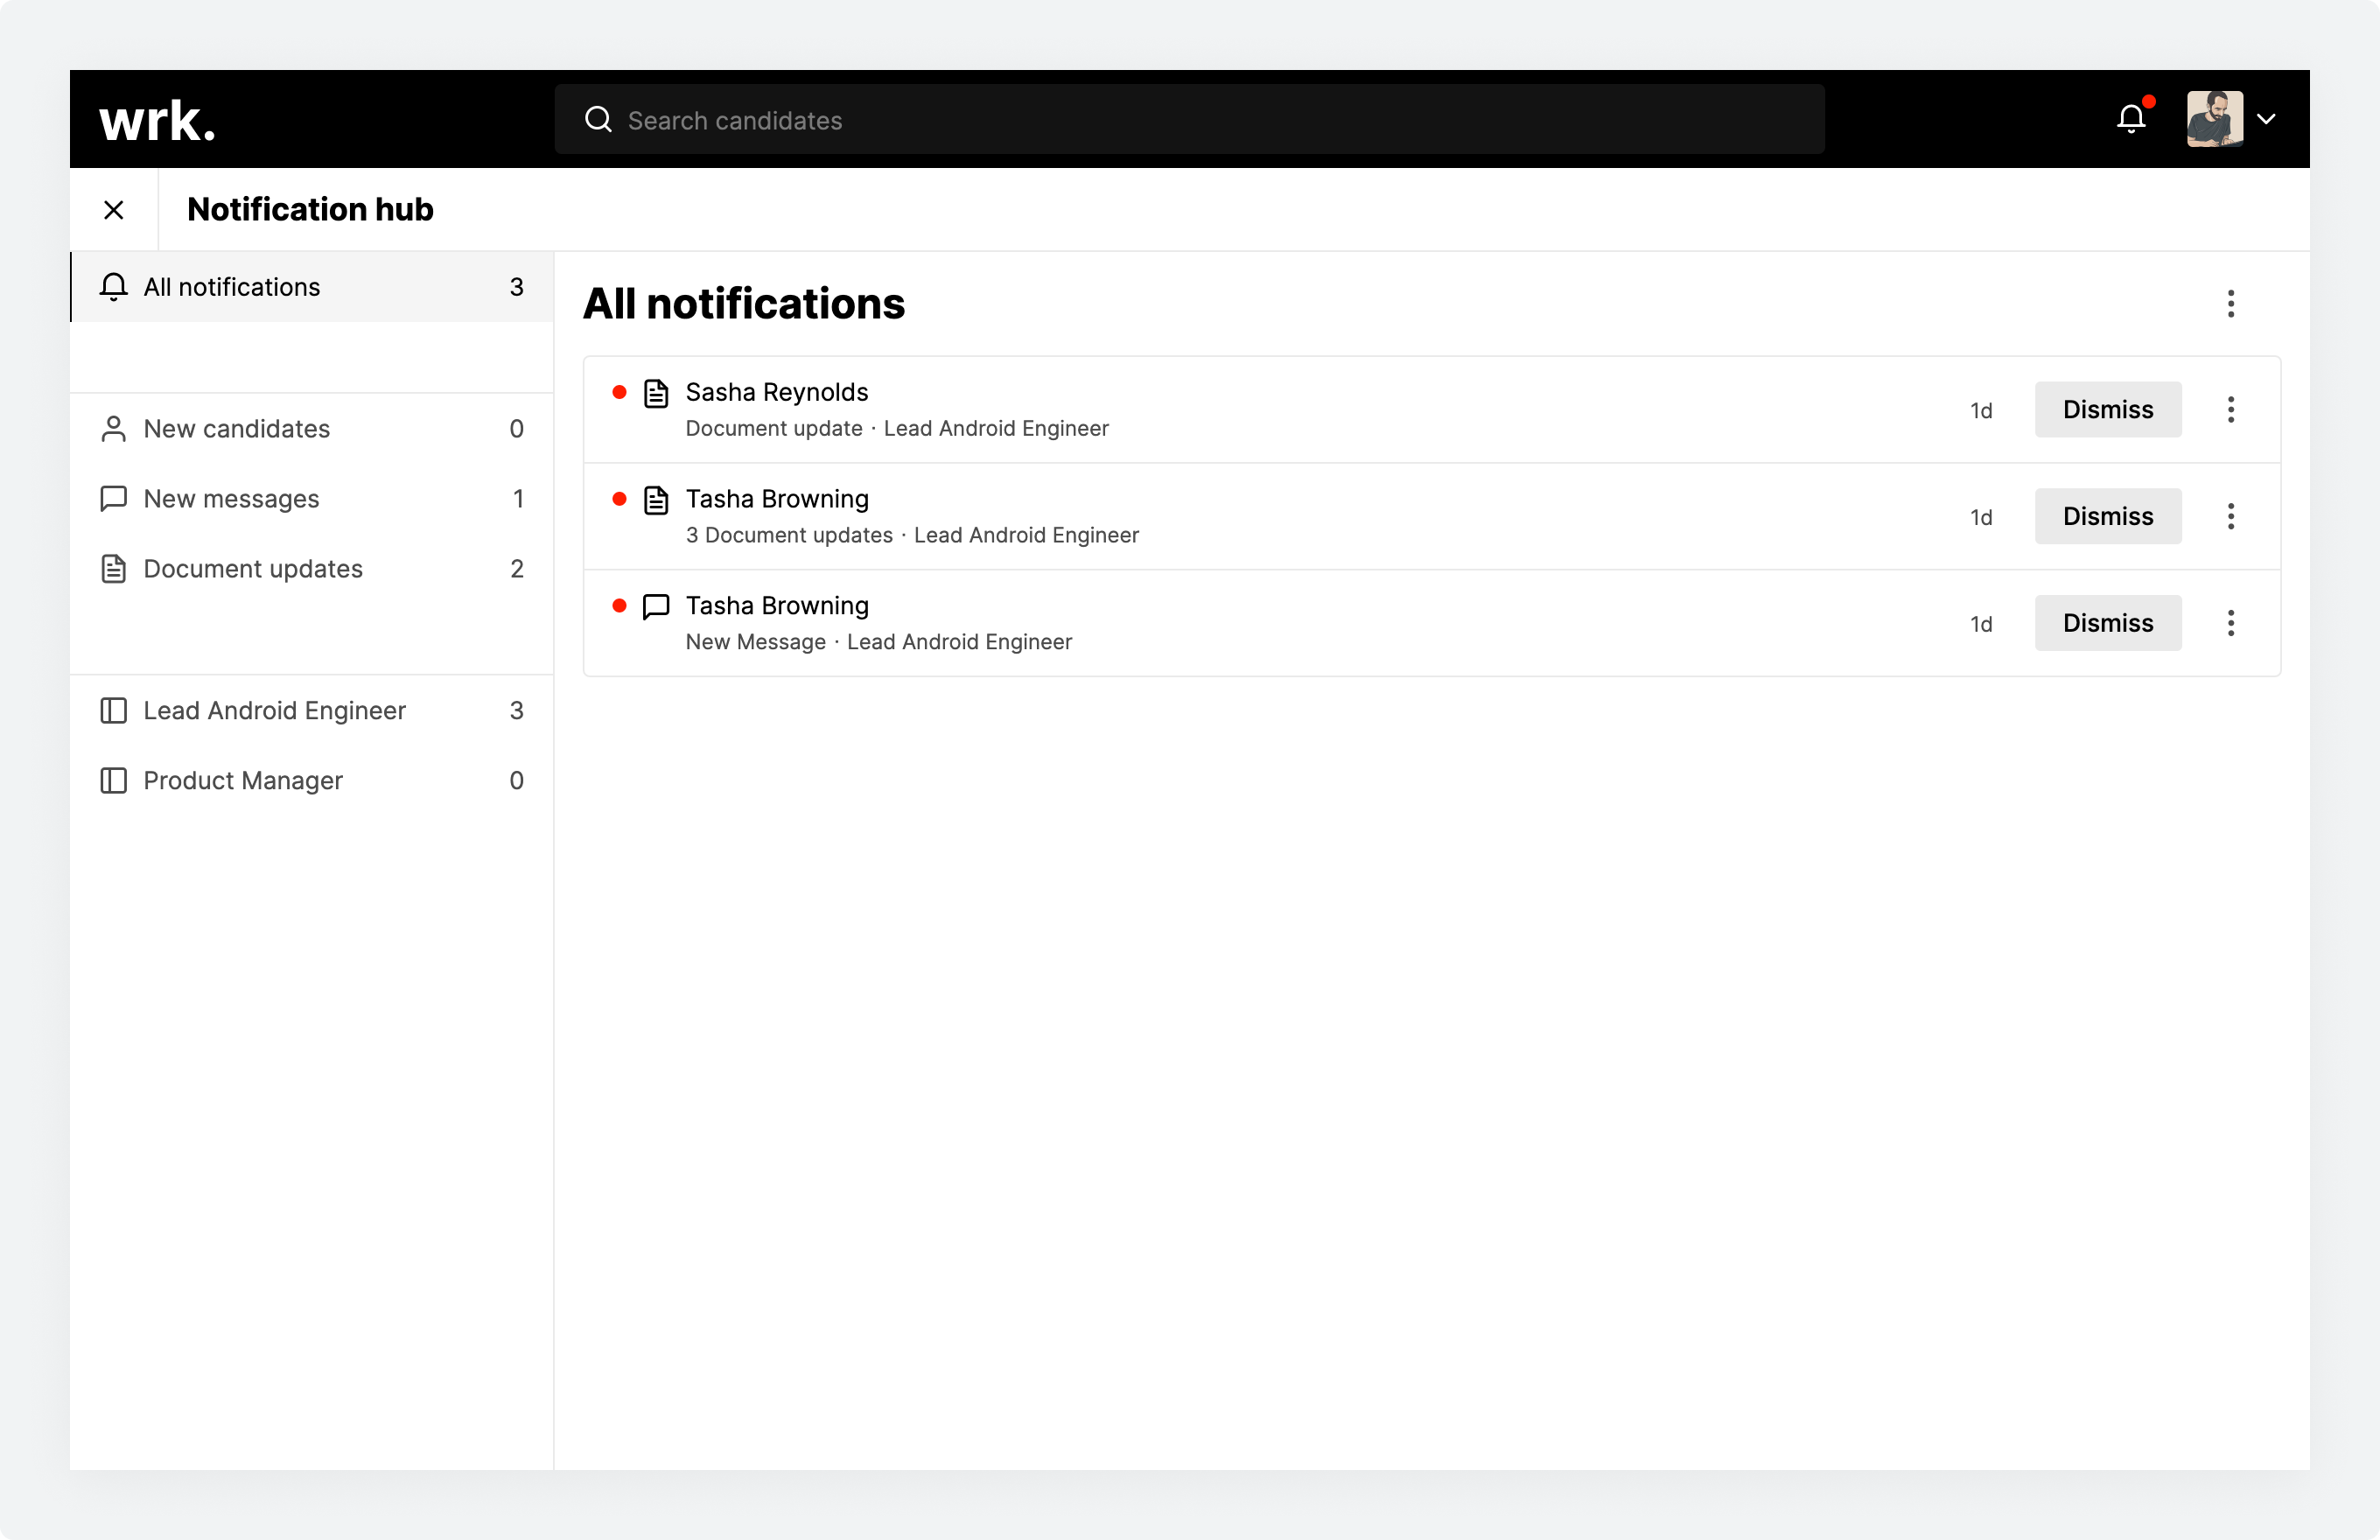 The notification hub in Wrk